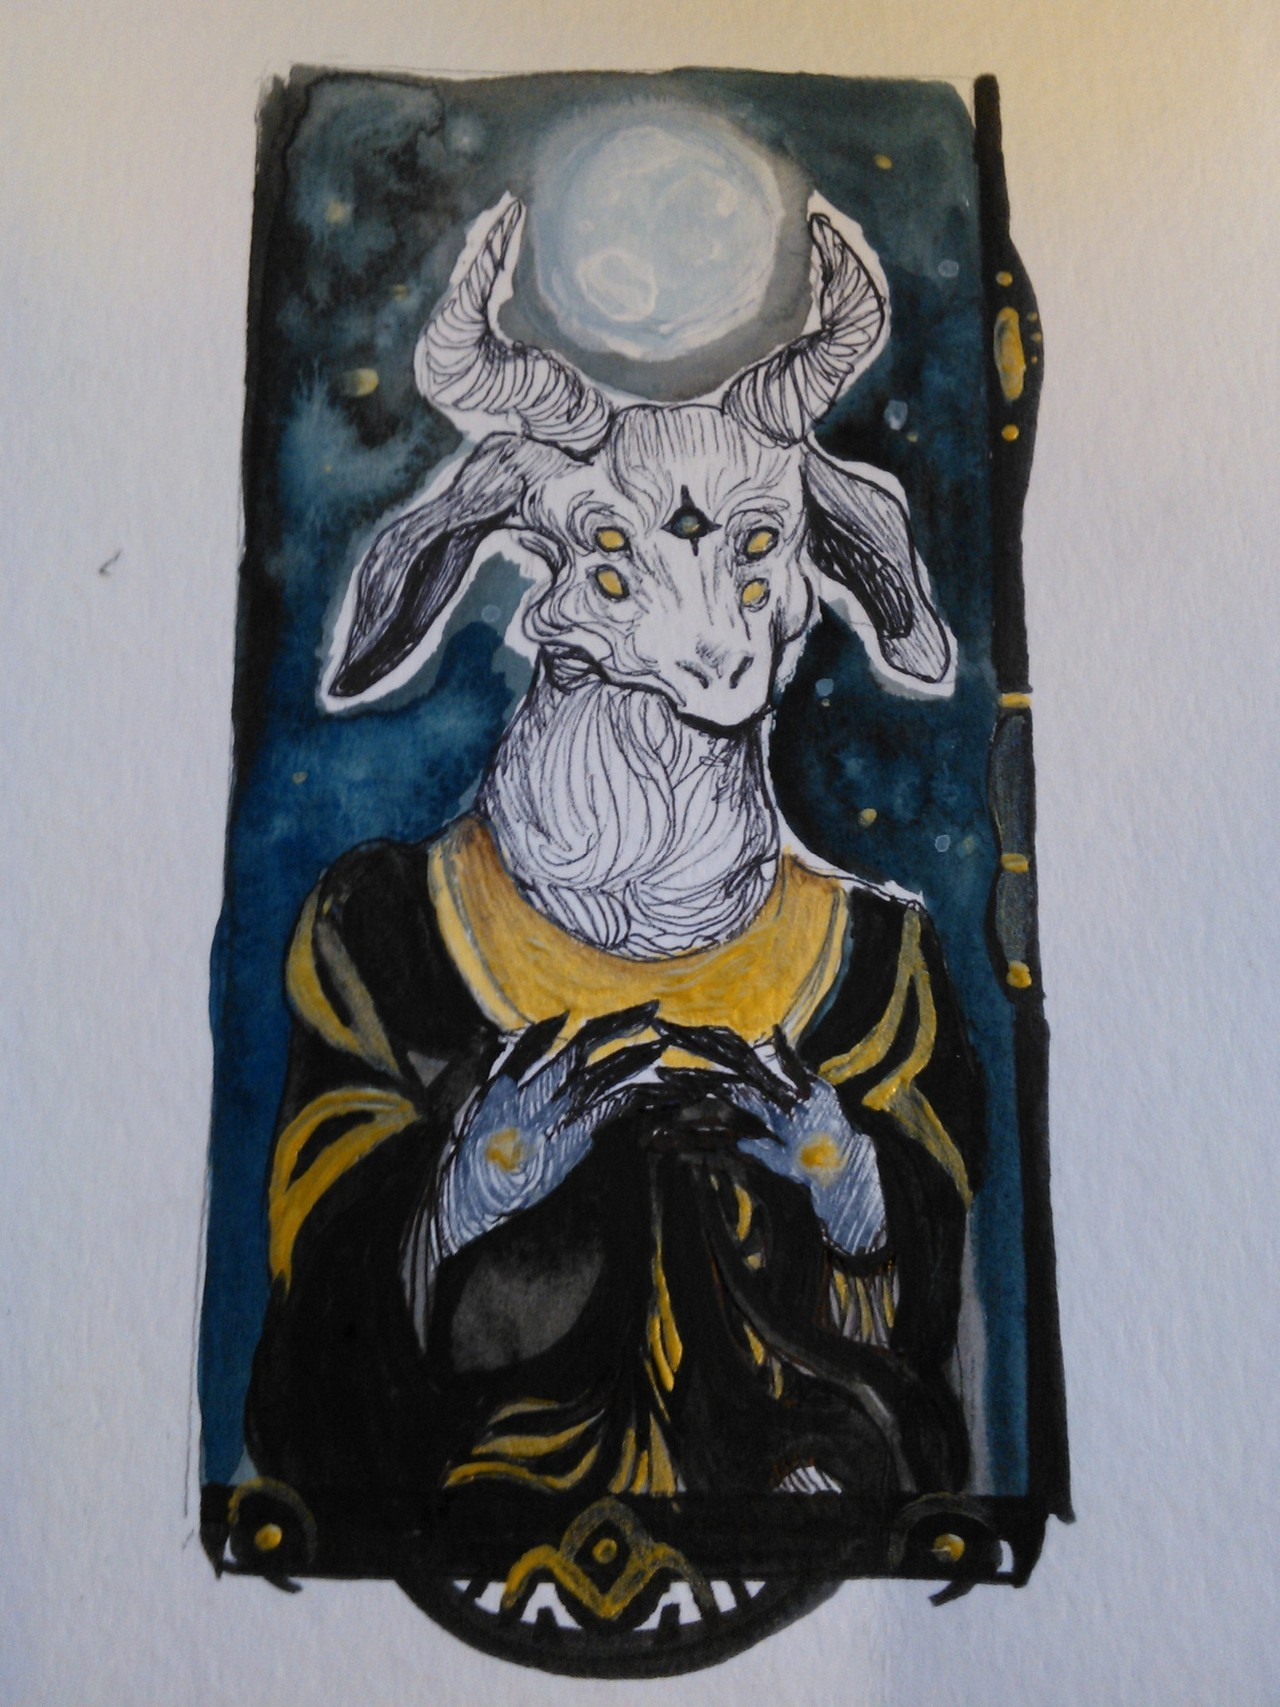 goat tarot card for senior thesis.